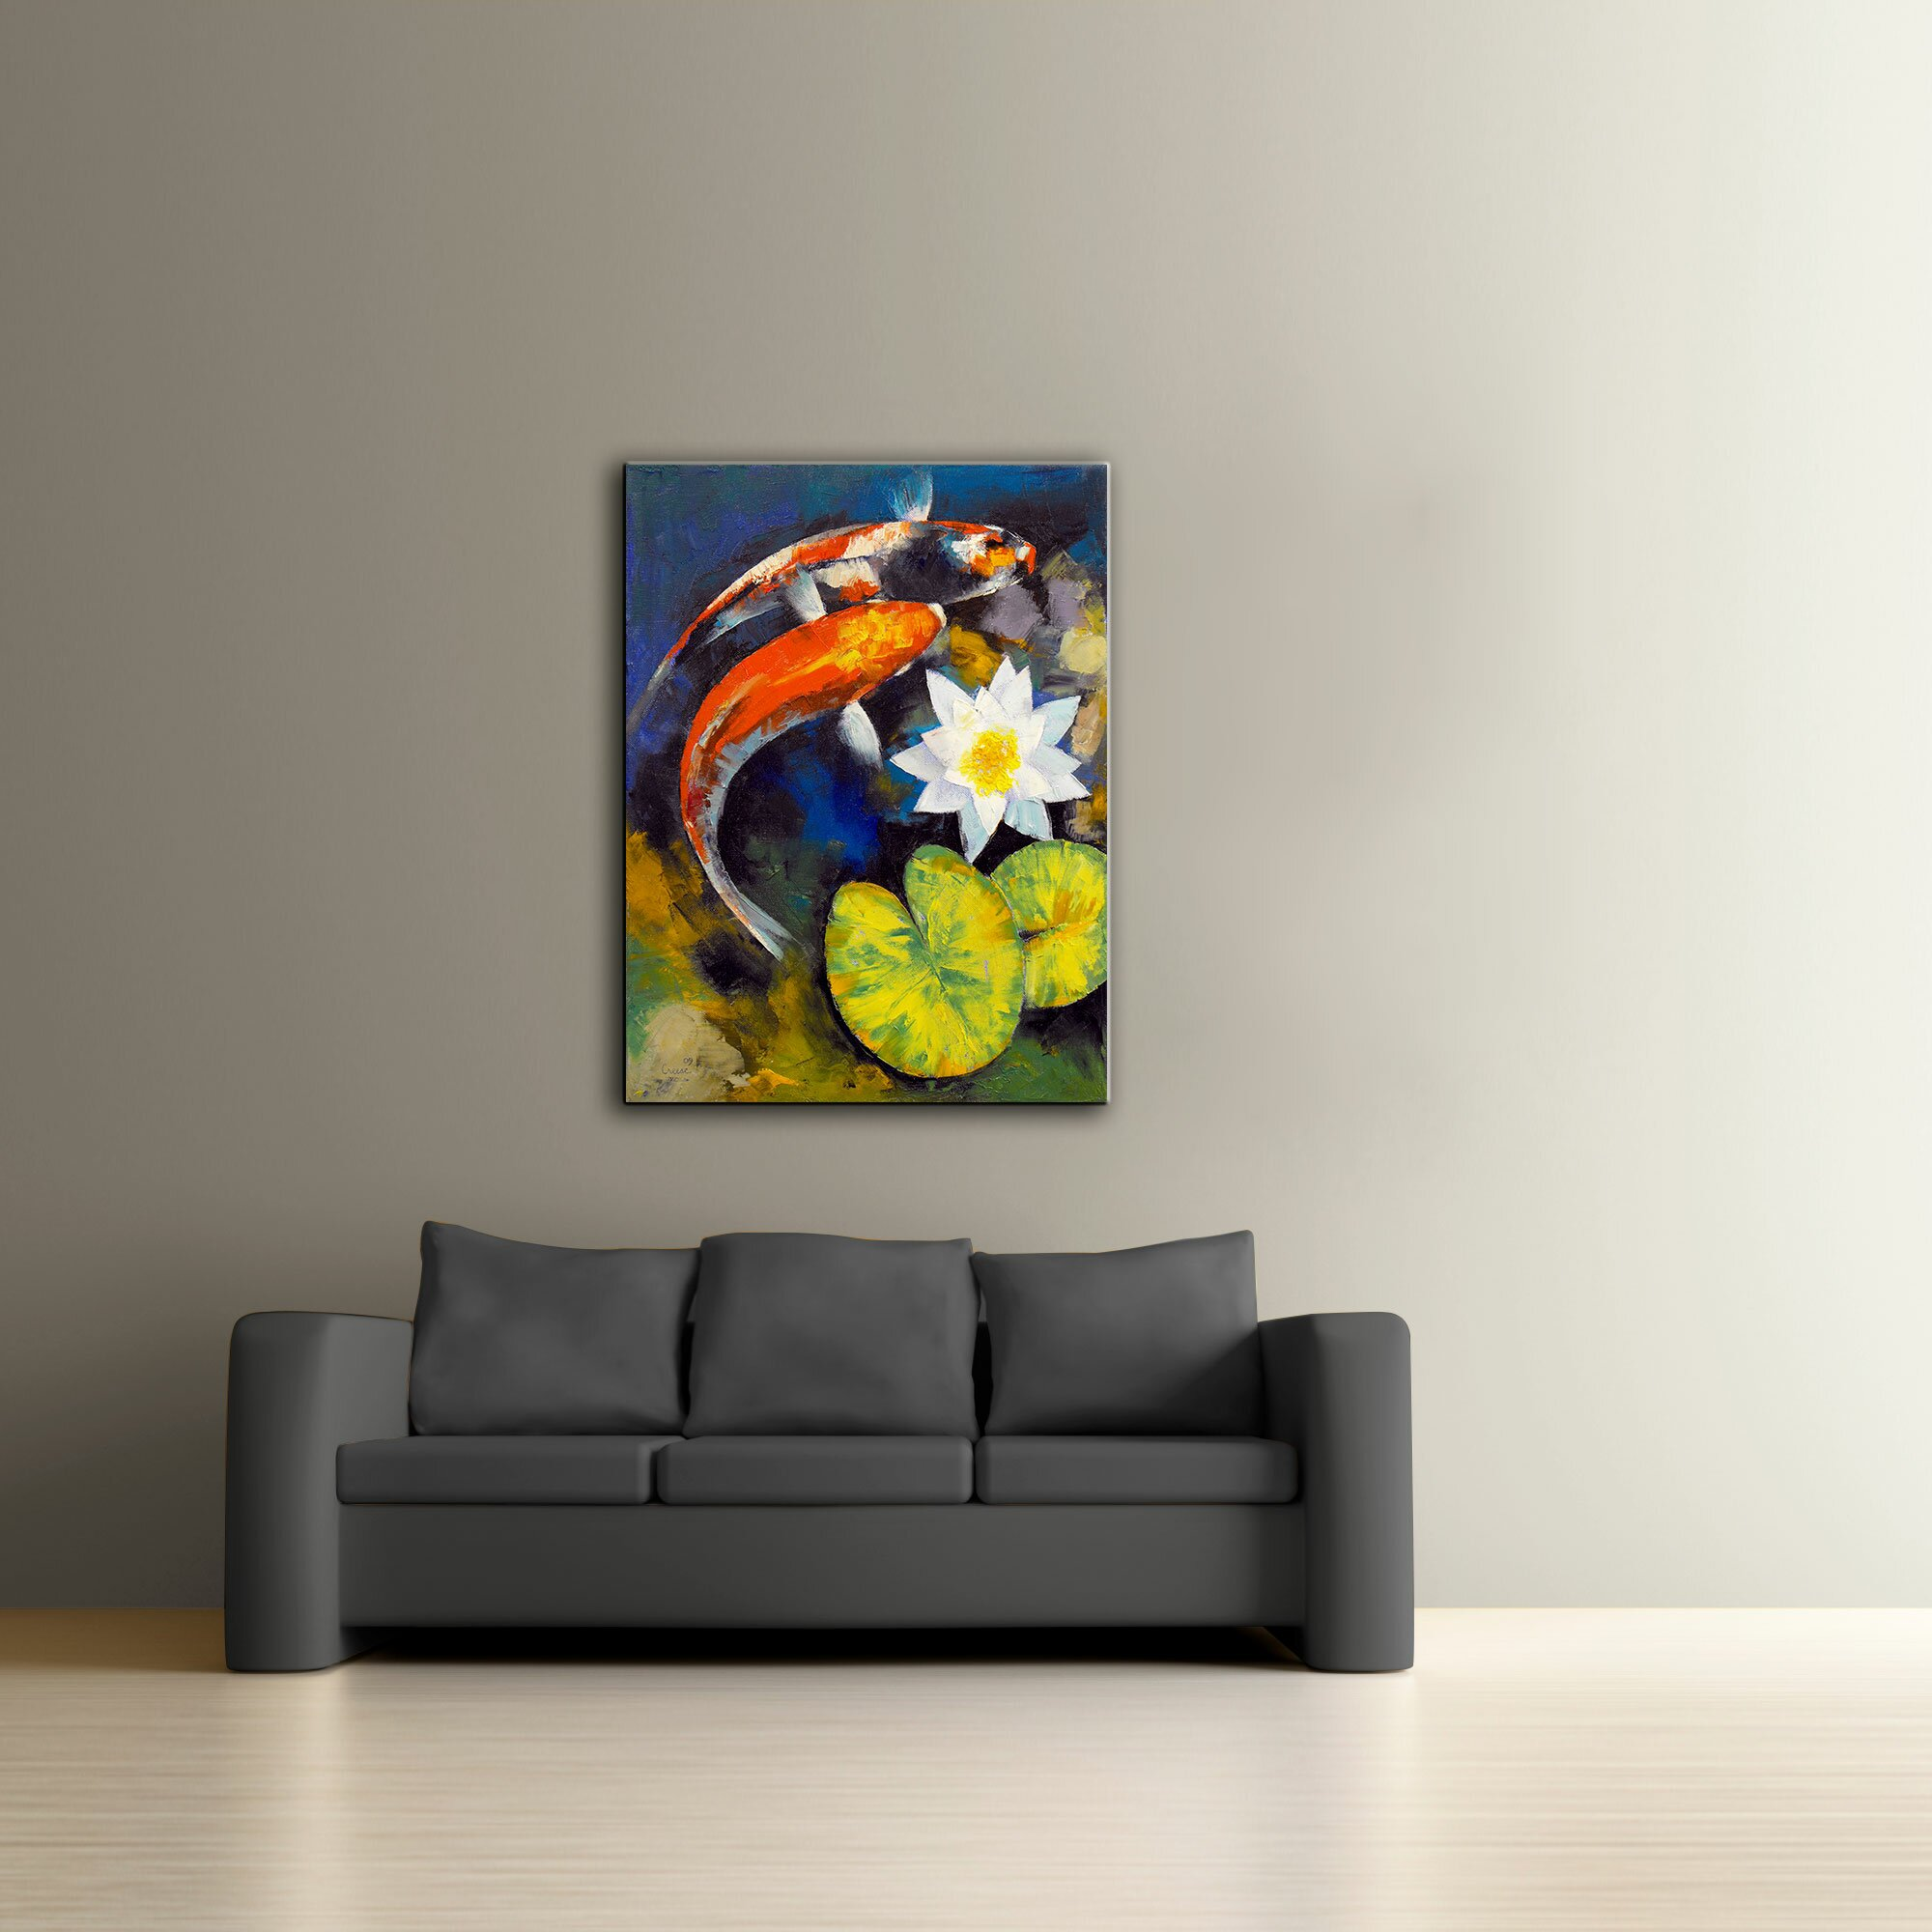 Artwall 39 koi fish and water lily 39 by michael creese framed for Koi canvas print